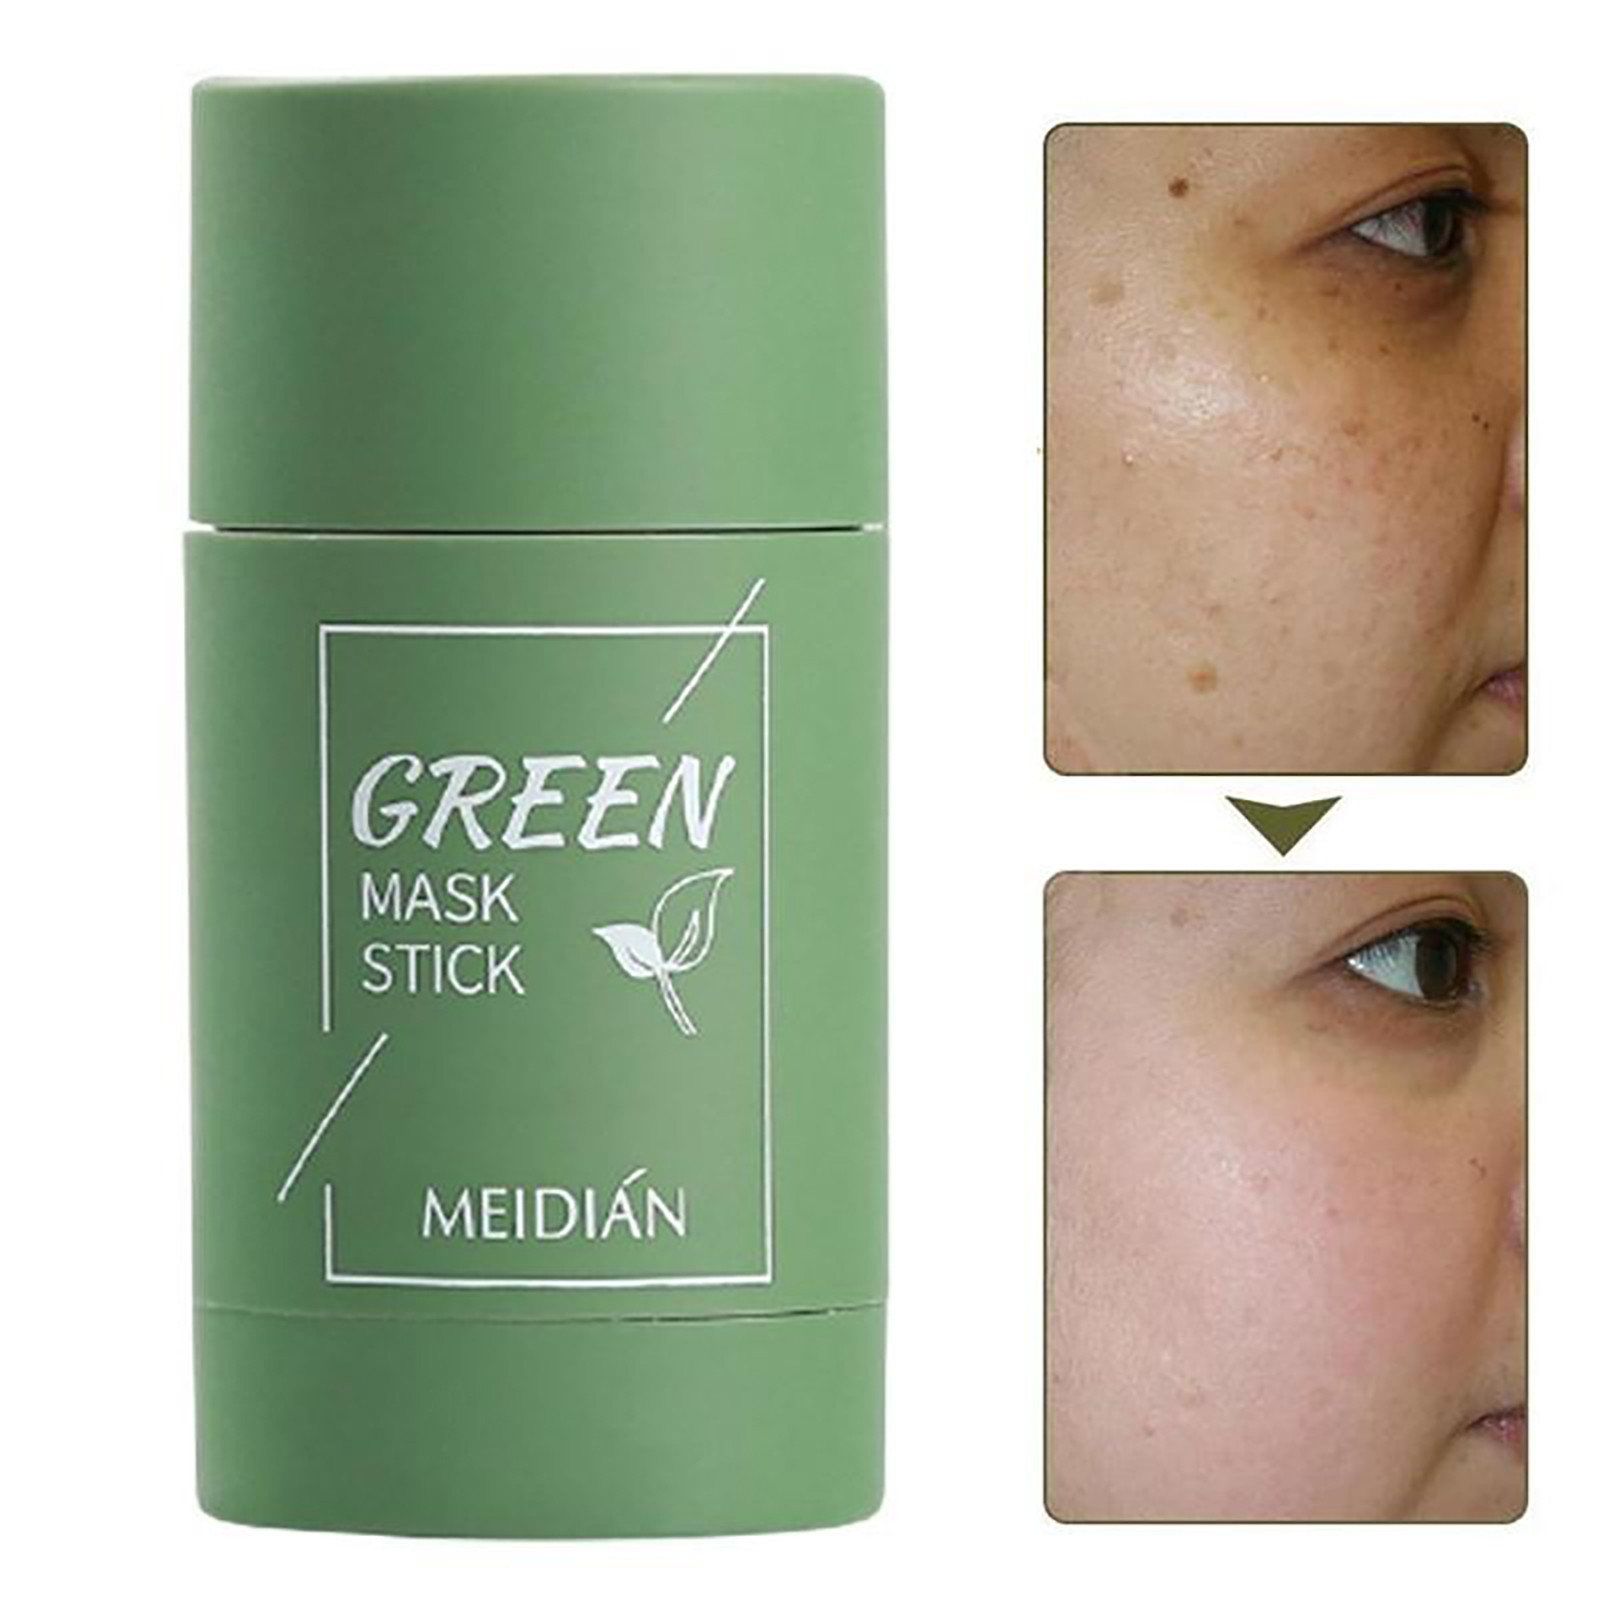 Green Tea Purifying Masks Clay Stick Oil Control Anti-Acne Eggplant Fine Cleaning Mask Whitening Skin Care Products Gift cadeau 5